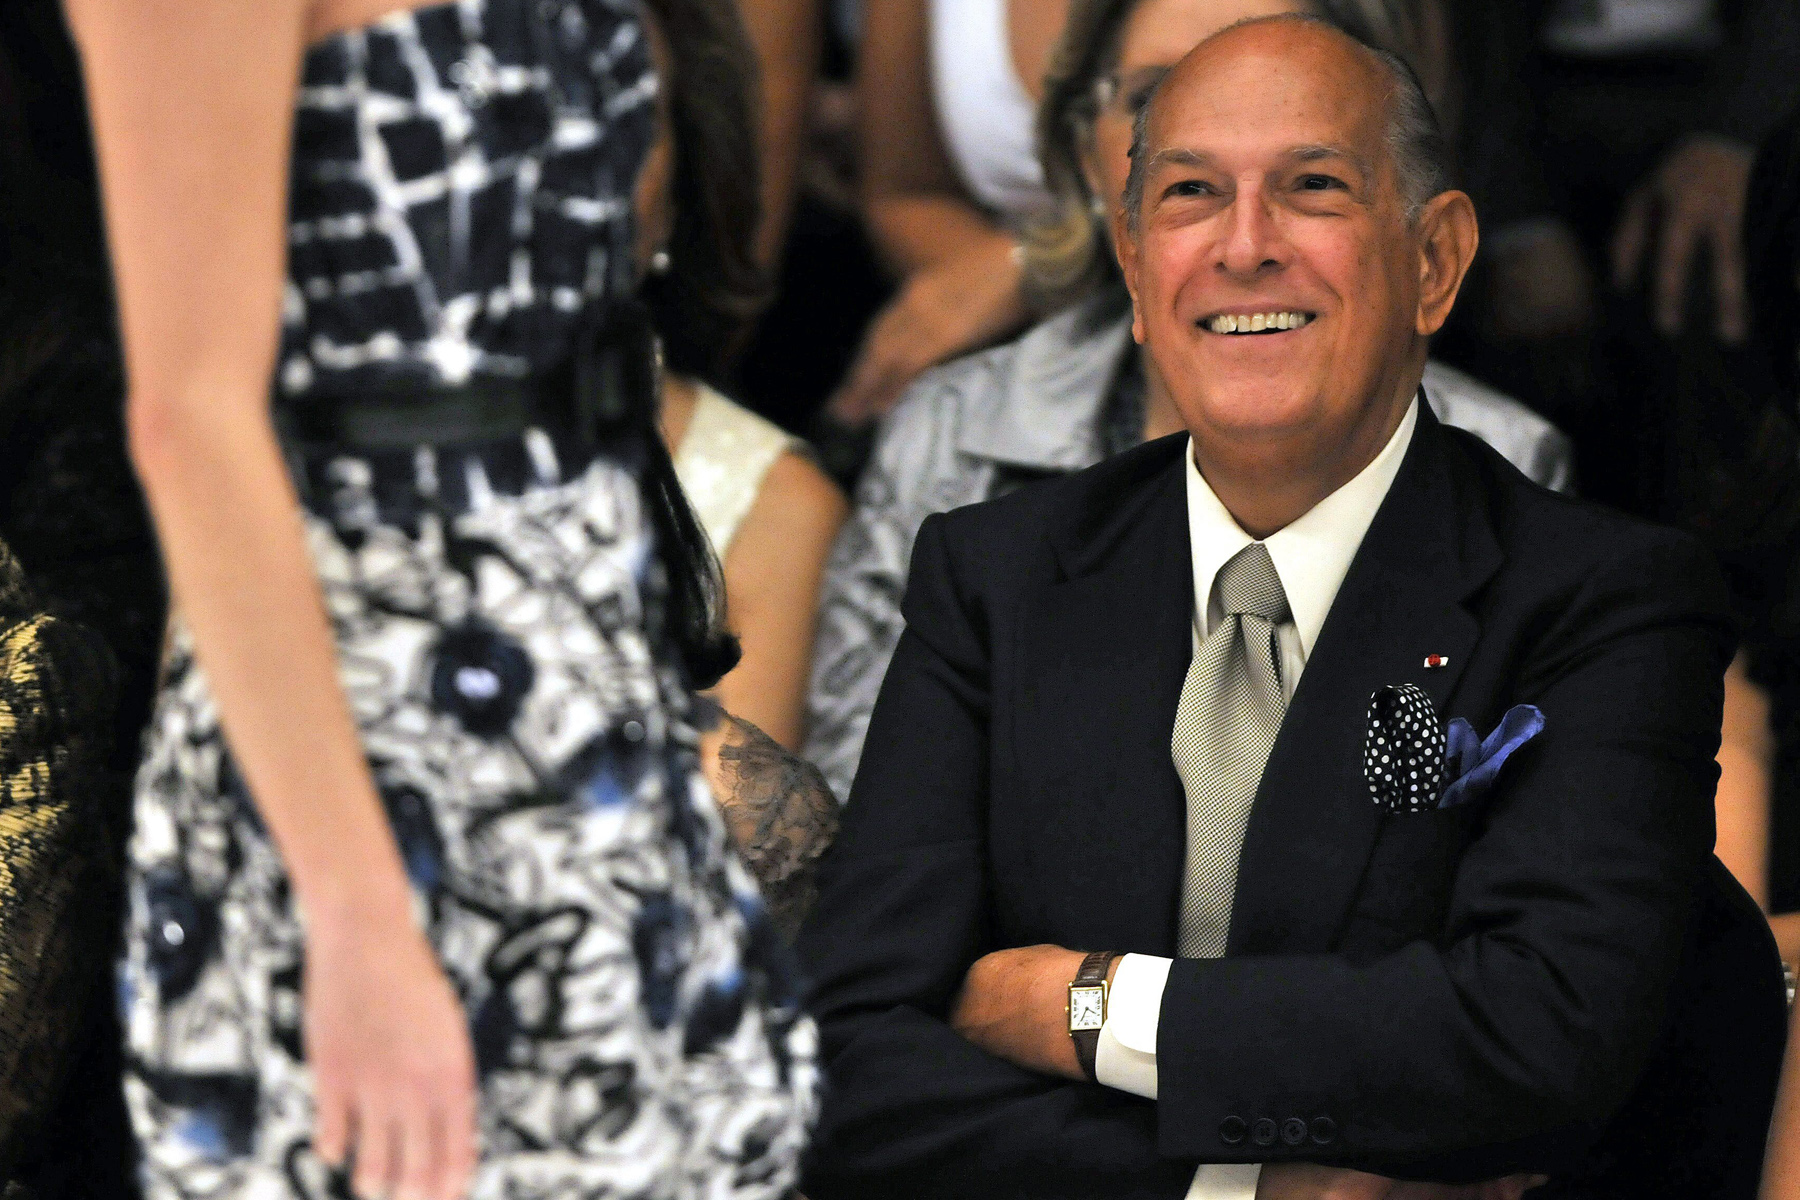 epa04455516 (FILE) Dominican American fashion designer Oscar de la Renta smiles during the presentation of his collection 'Resort 2010', during the ninth edition of the Cali Exposhow in Cali, southwest Colombia, 15 October 2009. De la Renta died at the age of 82 on 20 October 2014, his family confirmed.  EPA/CARLOS ORTEGA